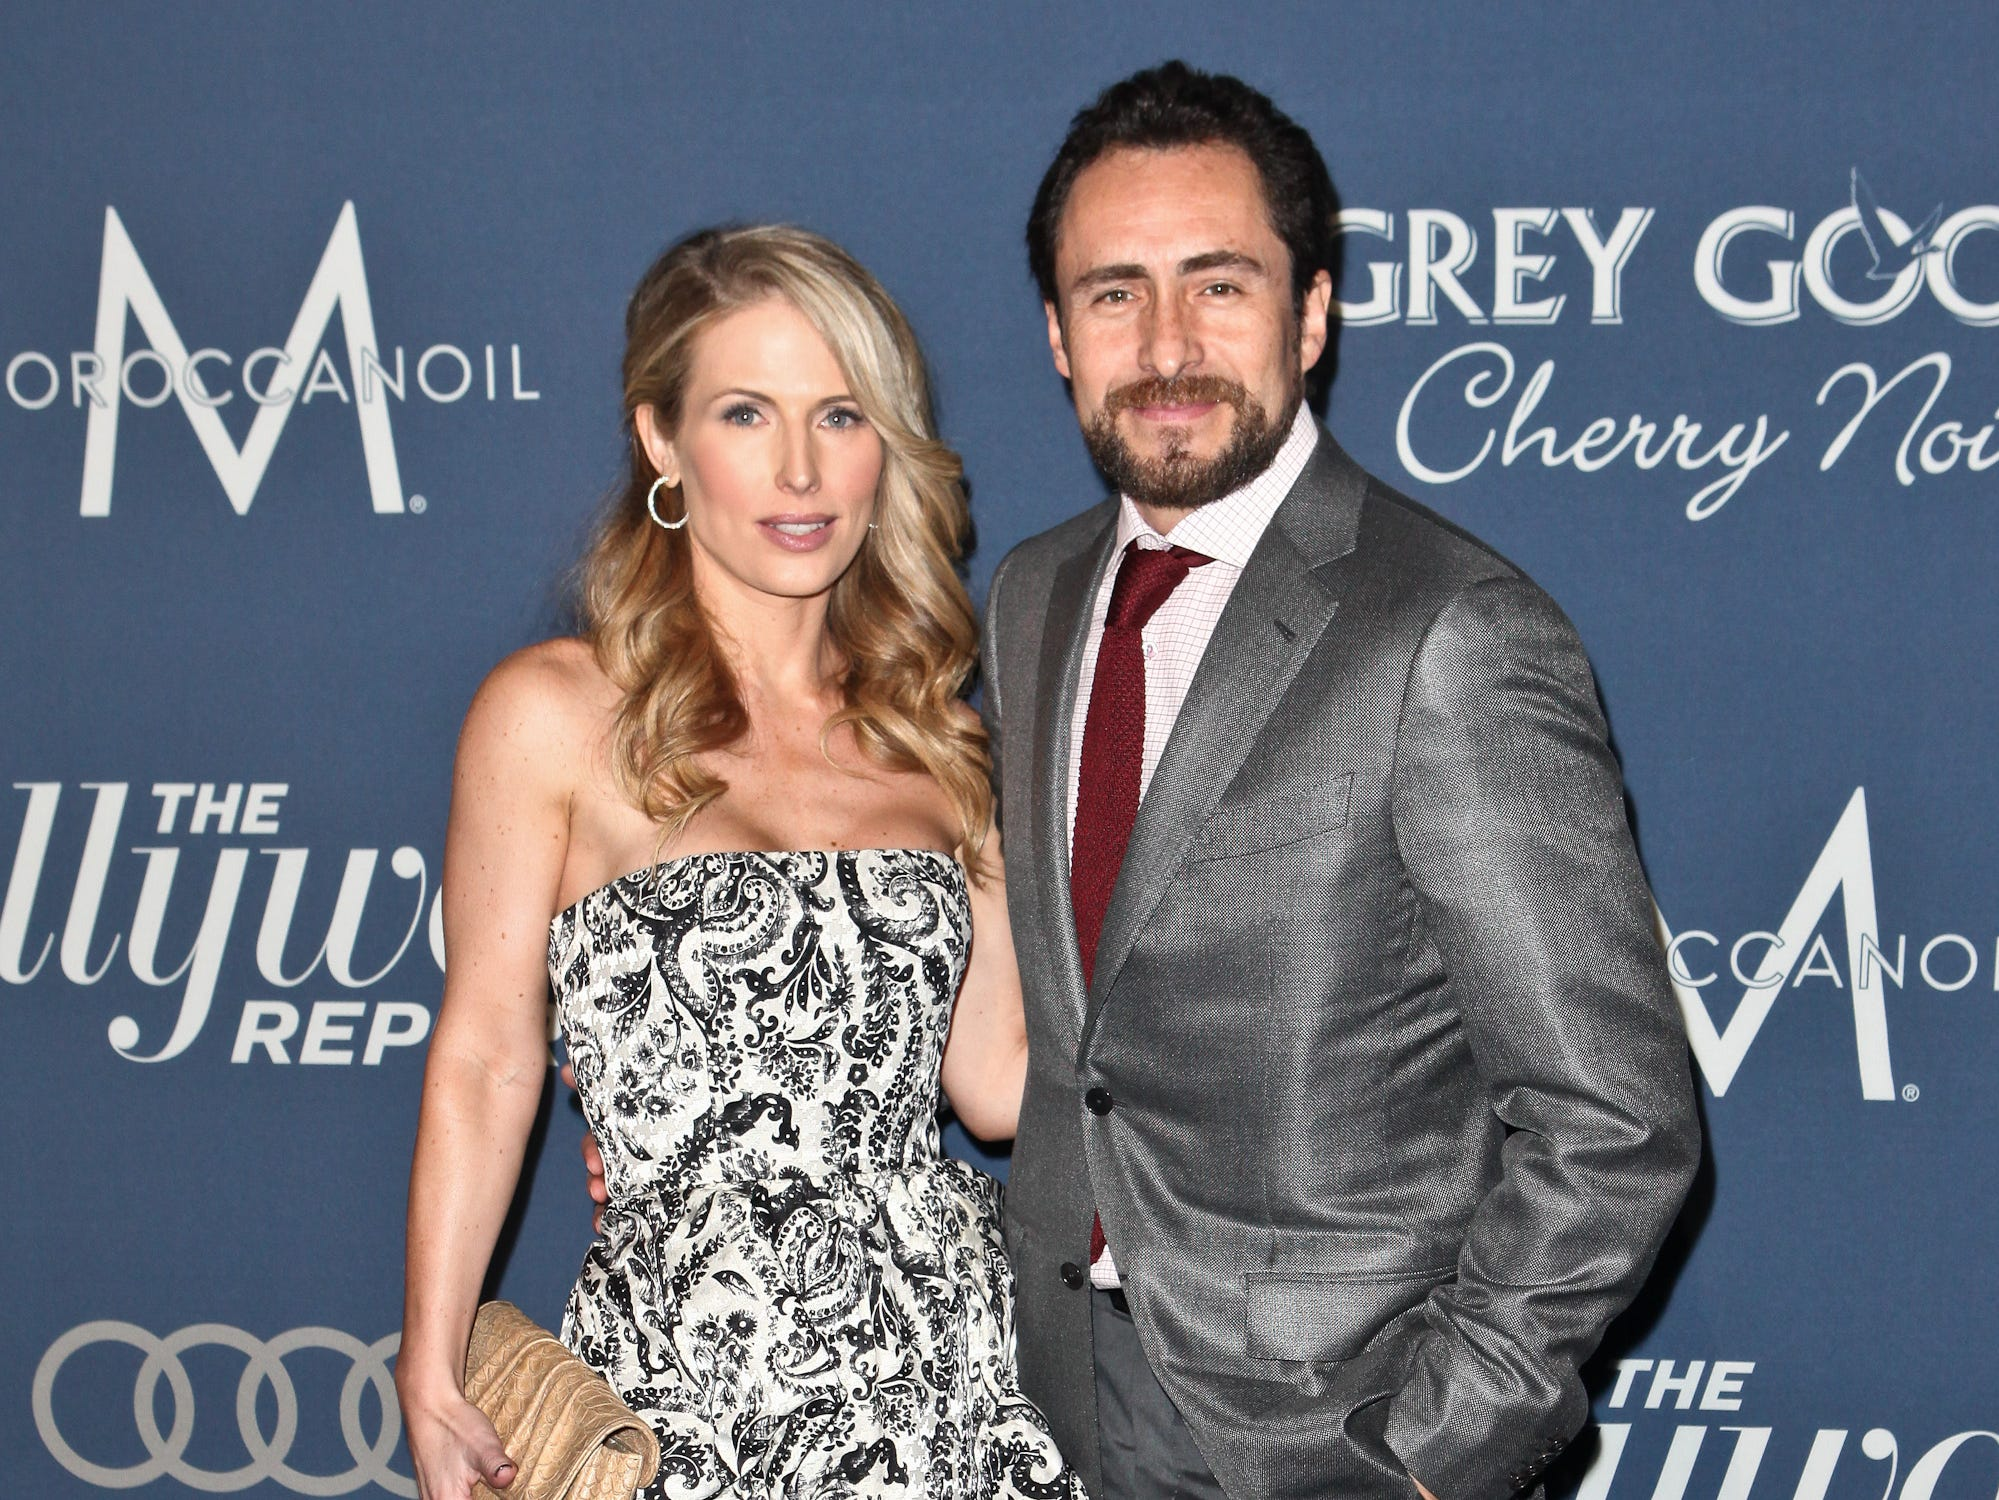 Demian Bichir and Stefanie Sherk arrive at the Hollywood Reporter's 'Nominees' Night 2012' on Feb. 23, 2012, in Los Angeles.